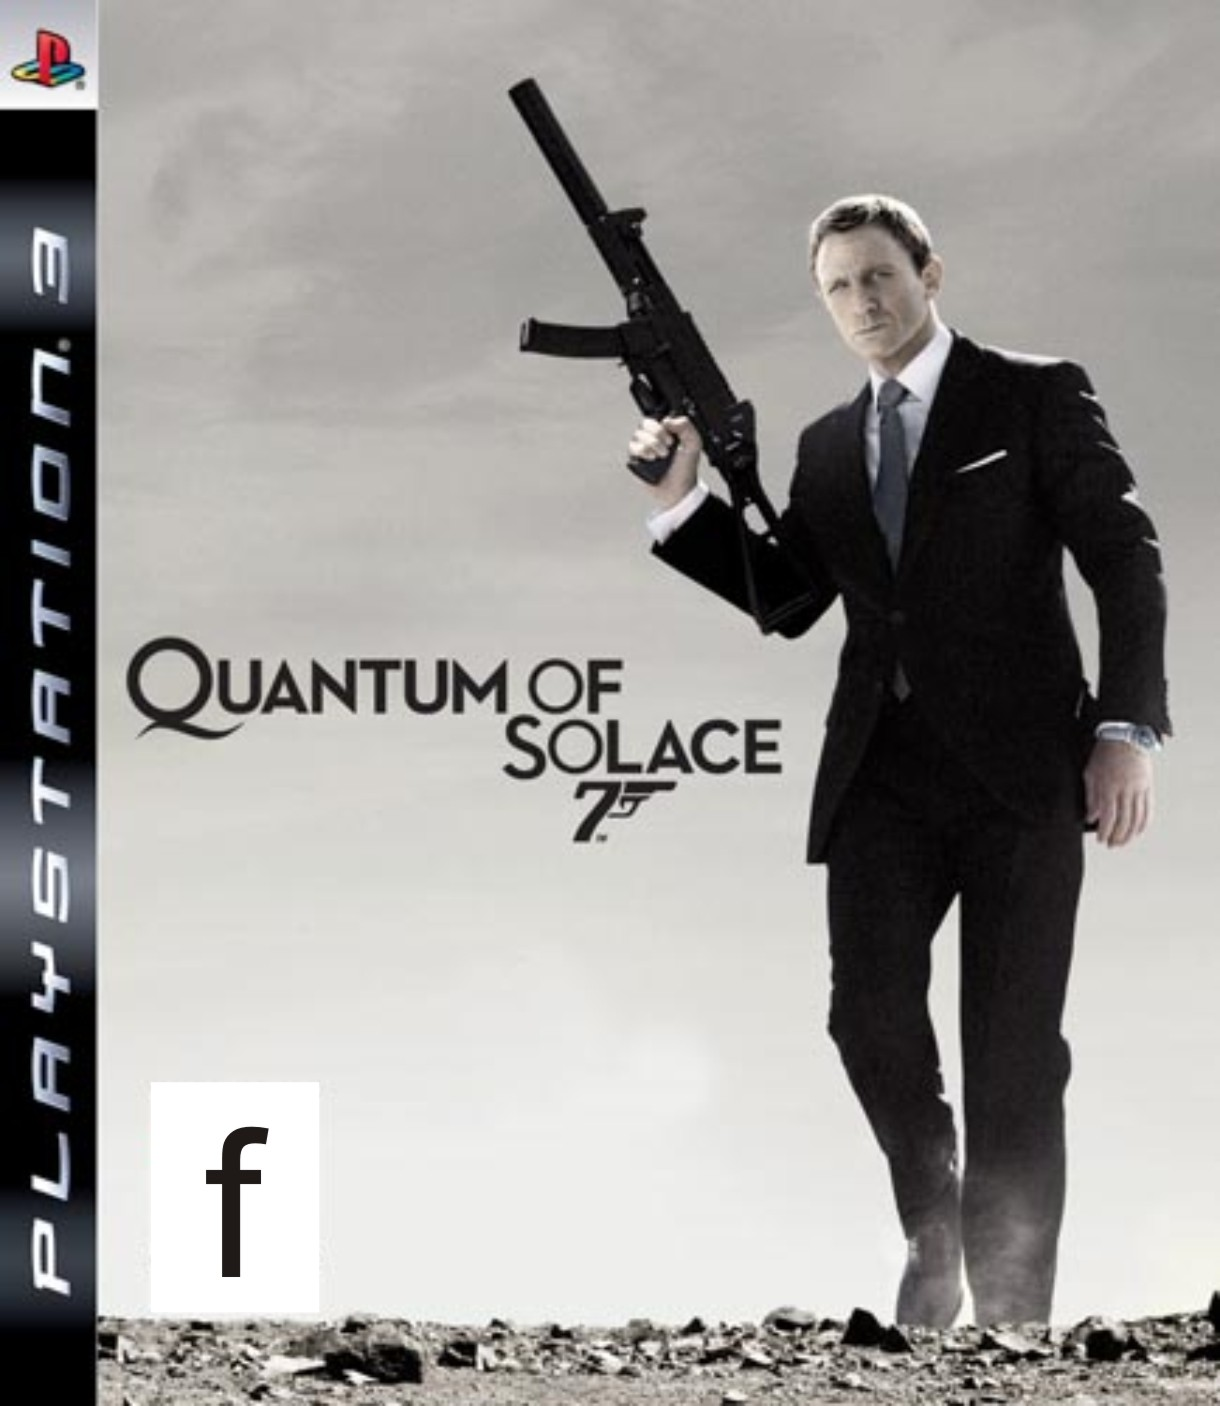 007  Quantum of Solace USA ISO lt PS2 ISOs  Emuparadise